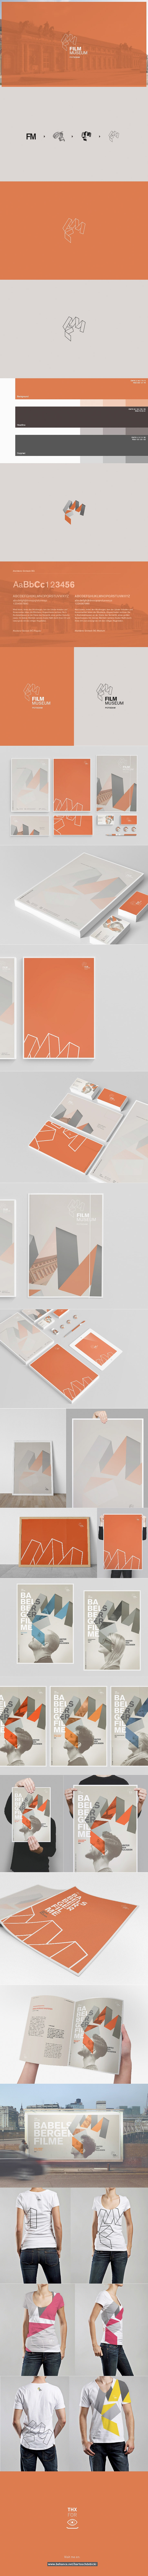 Design Conception of a Brand-Identity for the Film Museum in Potsdam. This work…